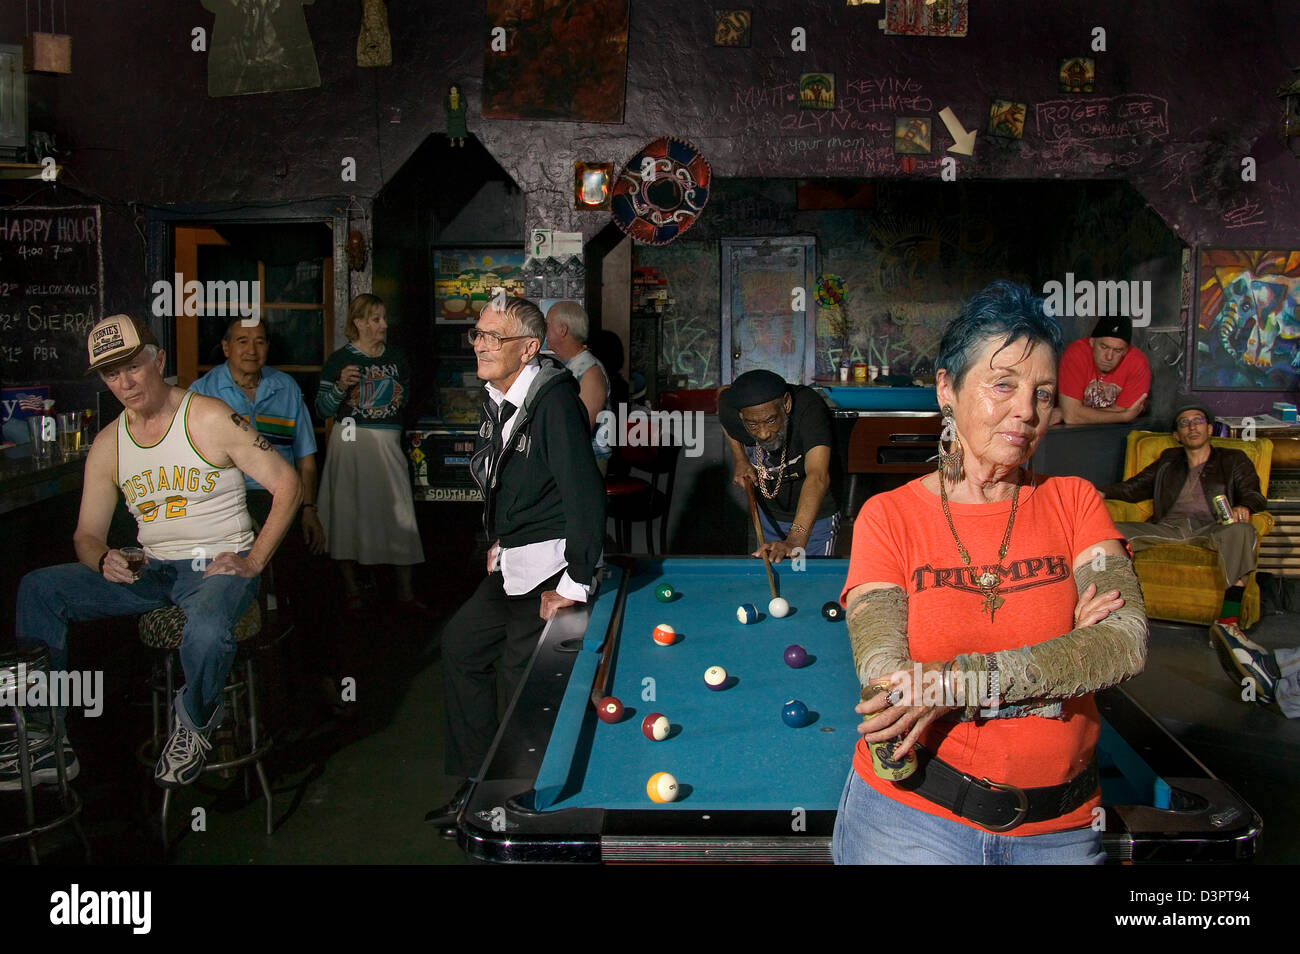 Old people in a bar - Stock Image